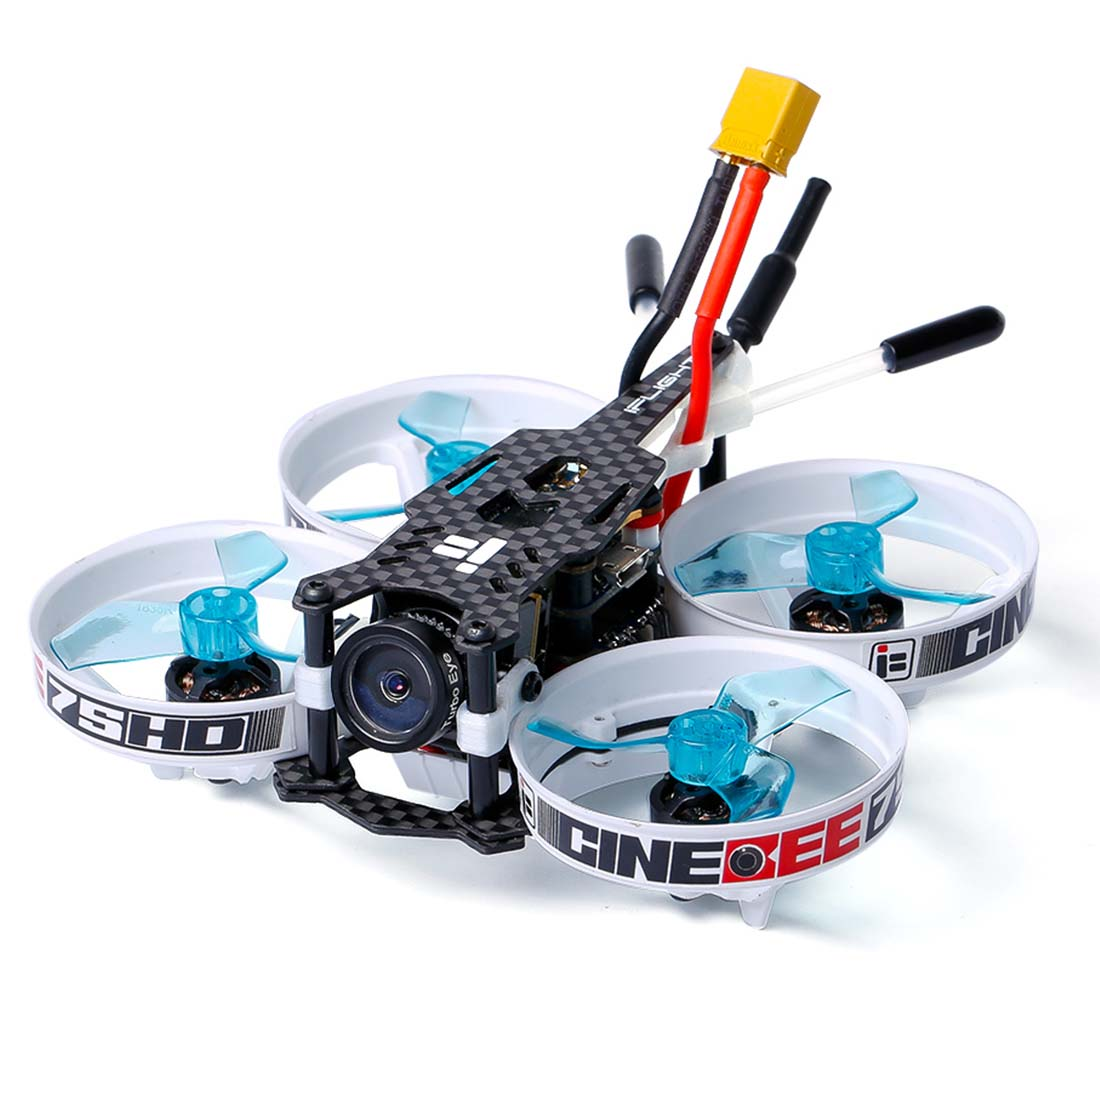 iFlight CineBee 75HD 2-4S Turtle V2 with SucceX F4 FC/iFlight 12A 4 in 1 ESC/SucceX VTX FPV Racing Drone